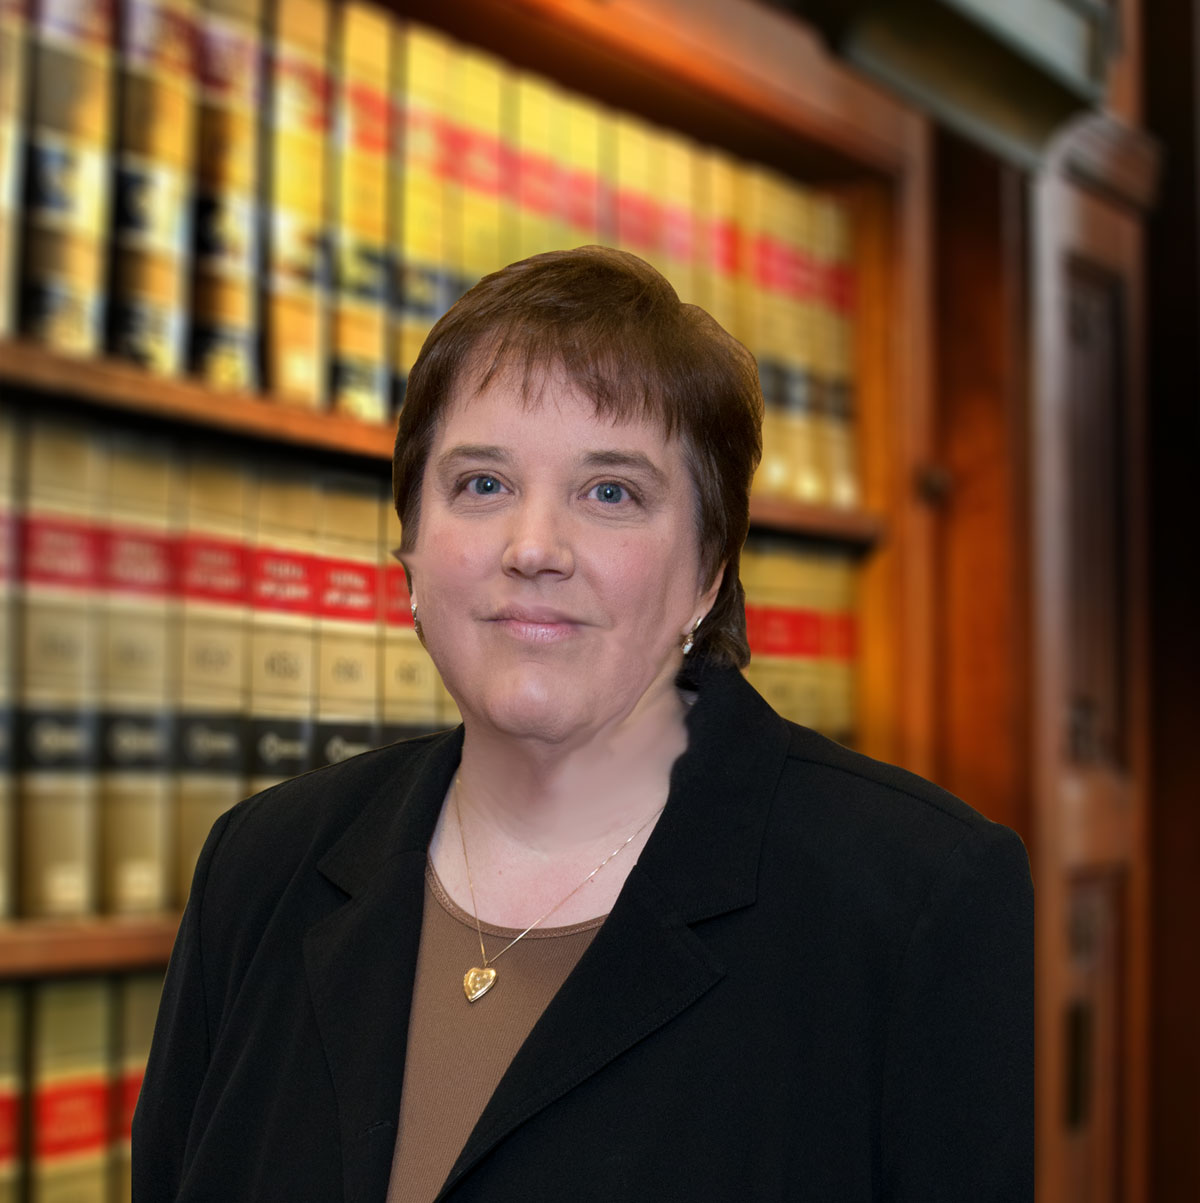 St Cloud Attorney Gwen Anderson